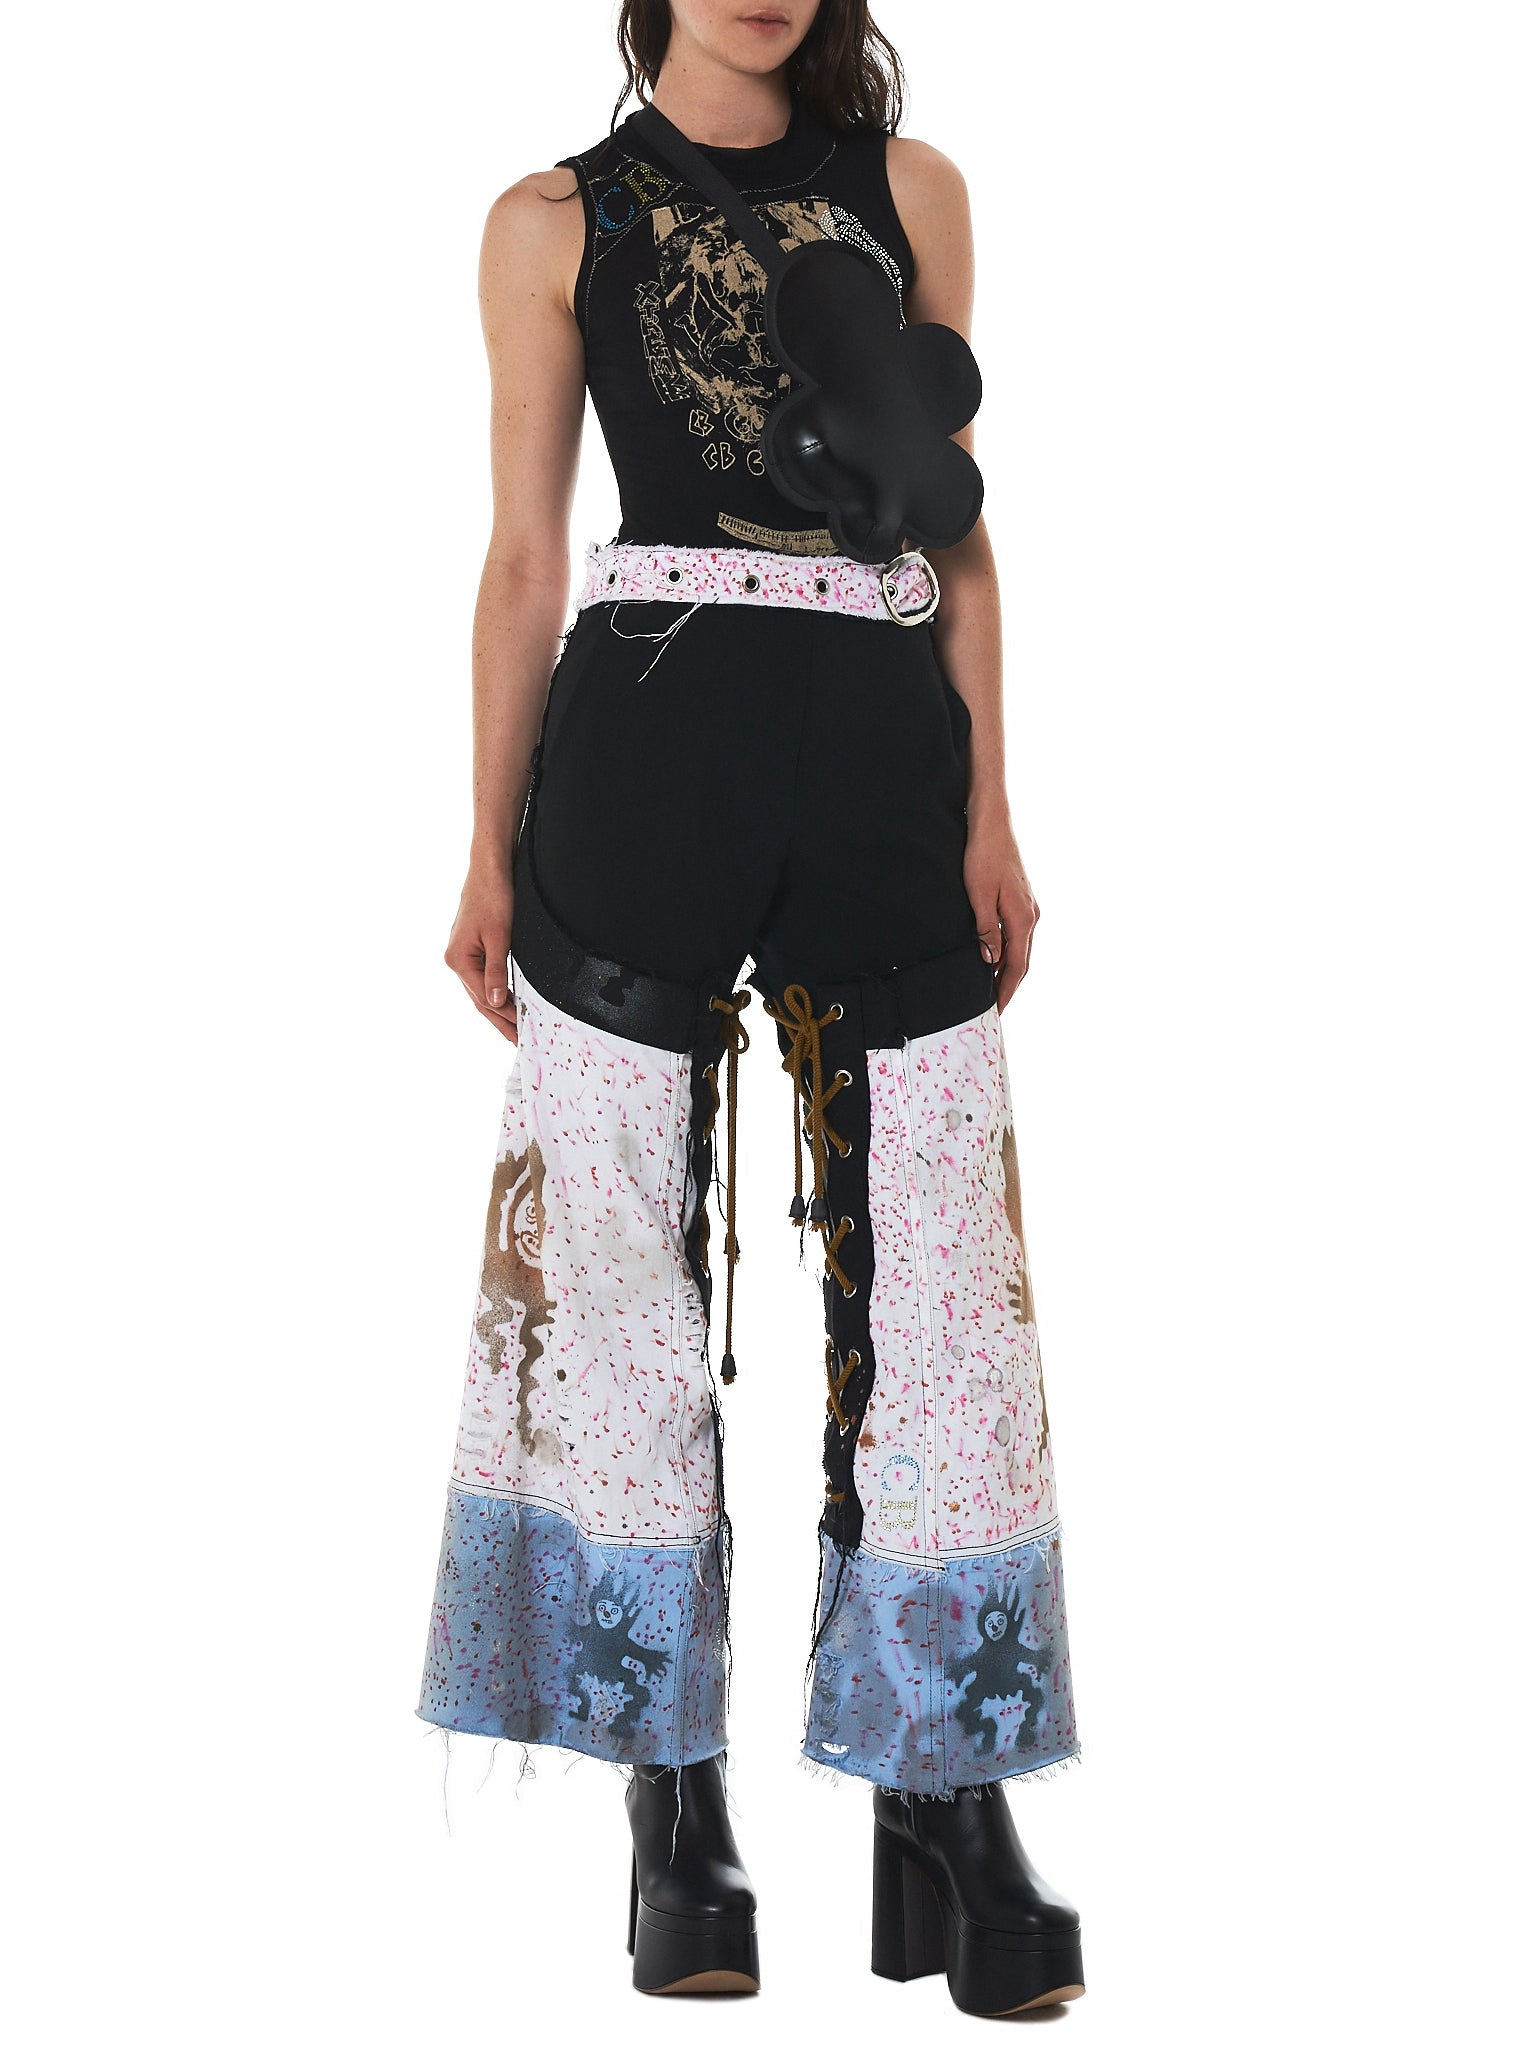 Claire Barrow Hand-Painted Denim - Hlorenzo Style